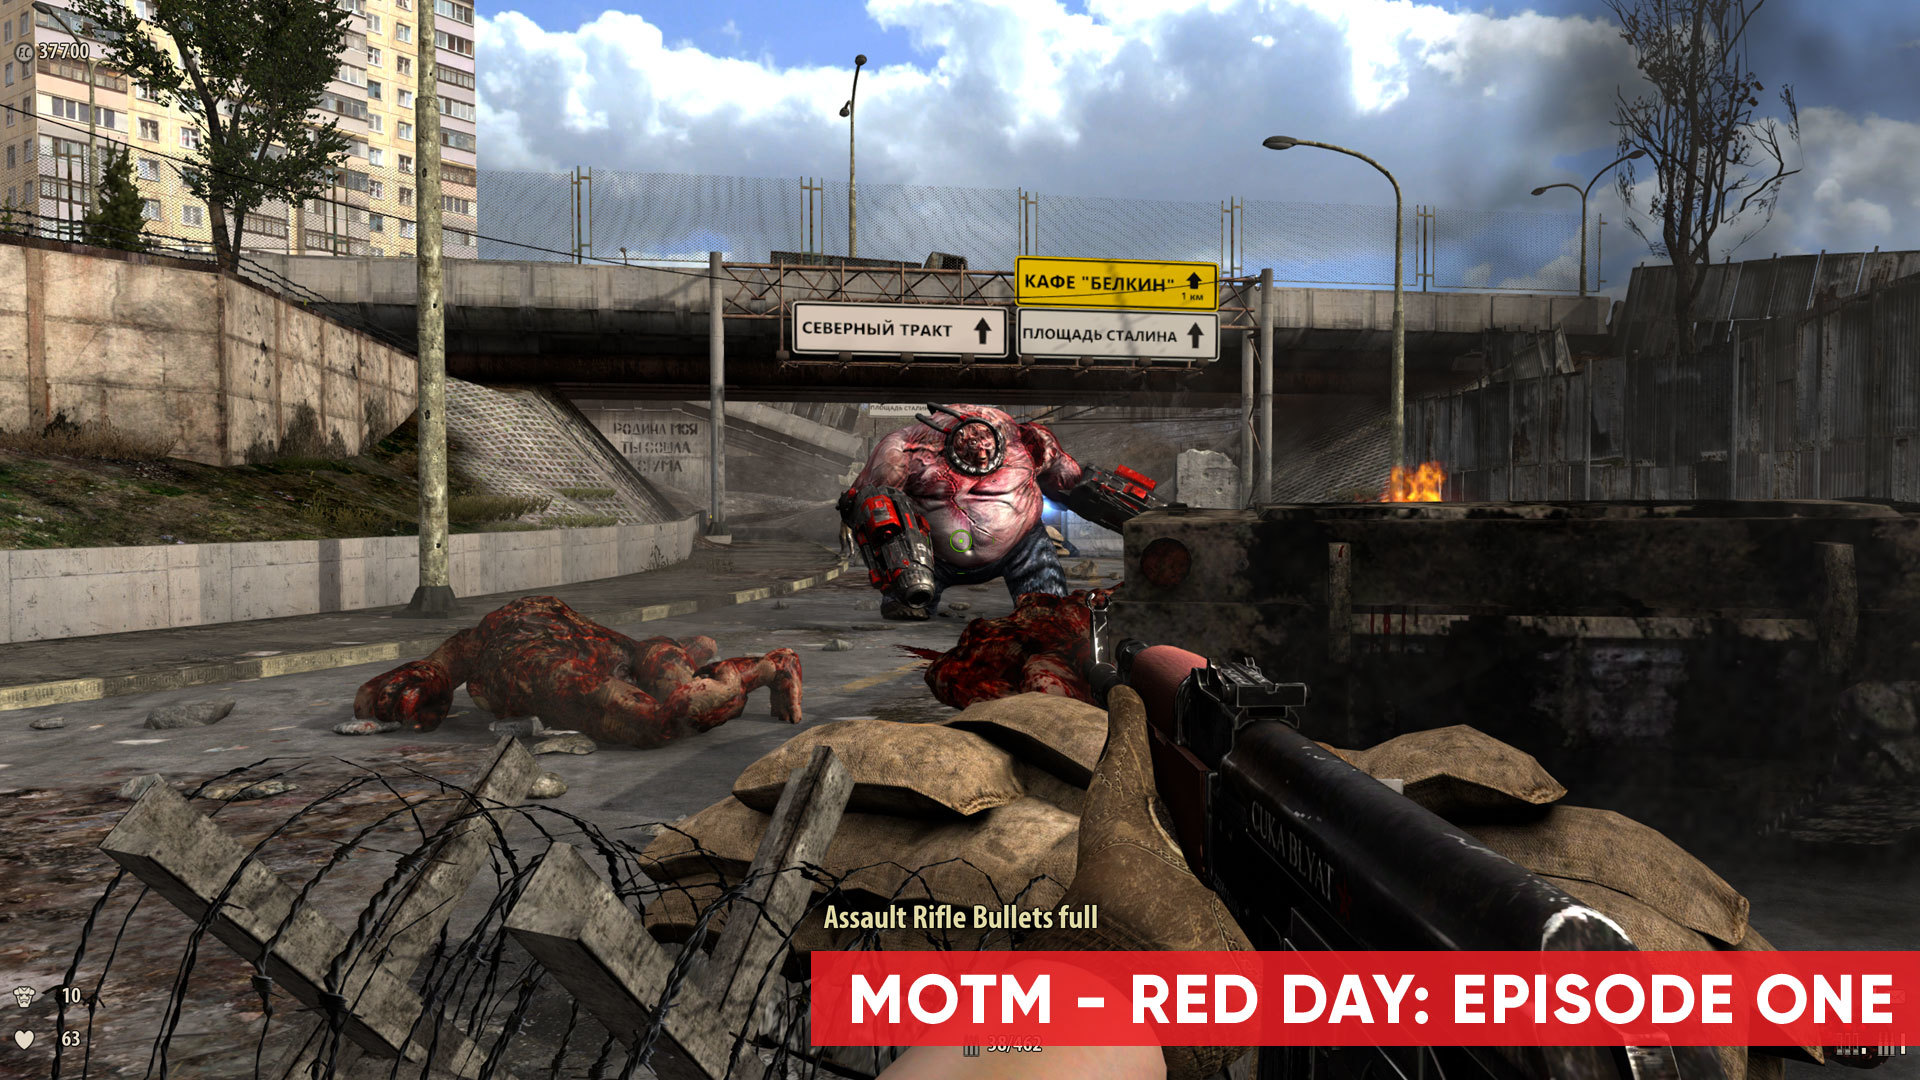 592365ed4 Hey everyone! Check out this epic Serious Sam Fusion mod – Red Day: Episode  One. It's a custom campaign mod telling a story about Sam's war against the  ...